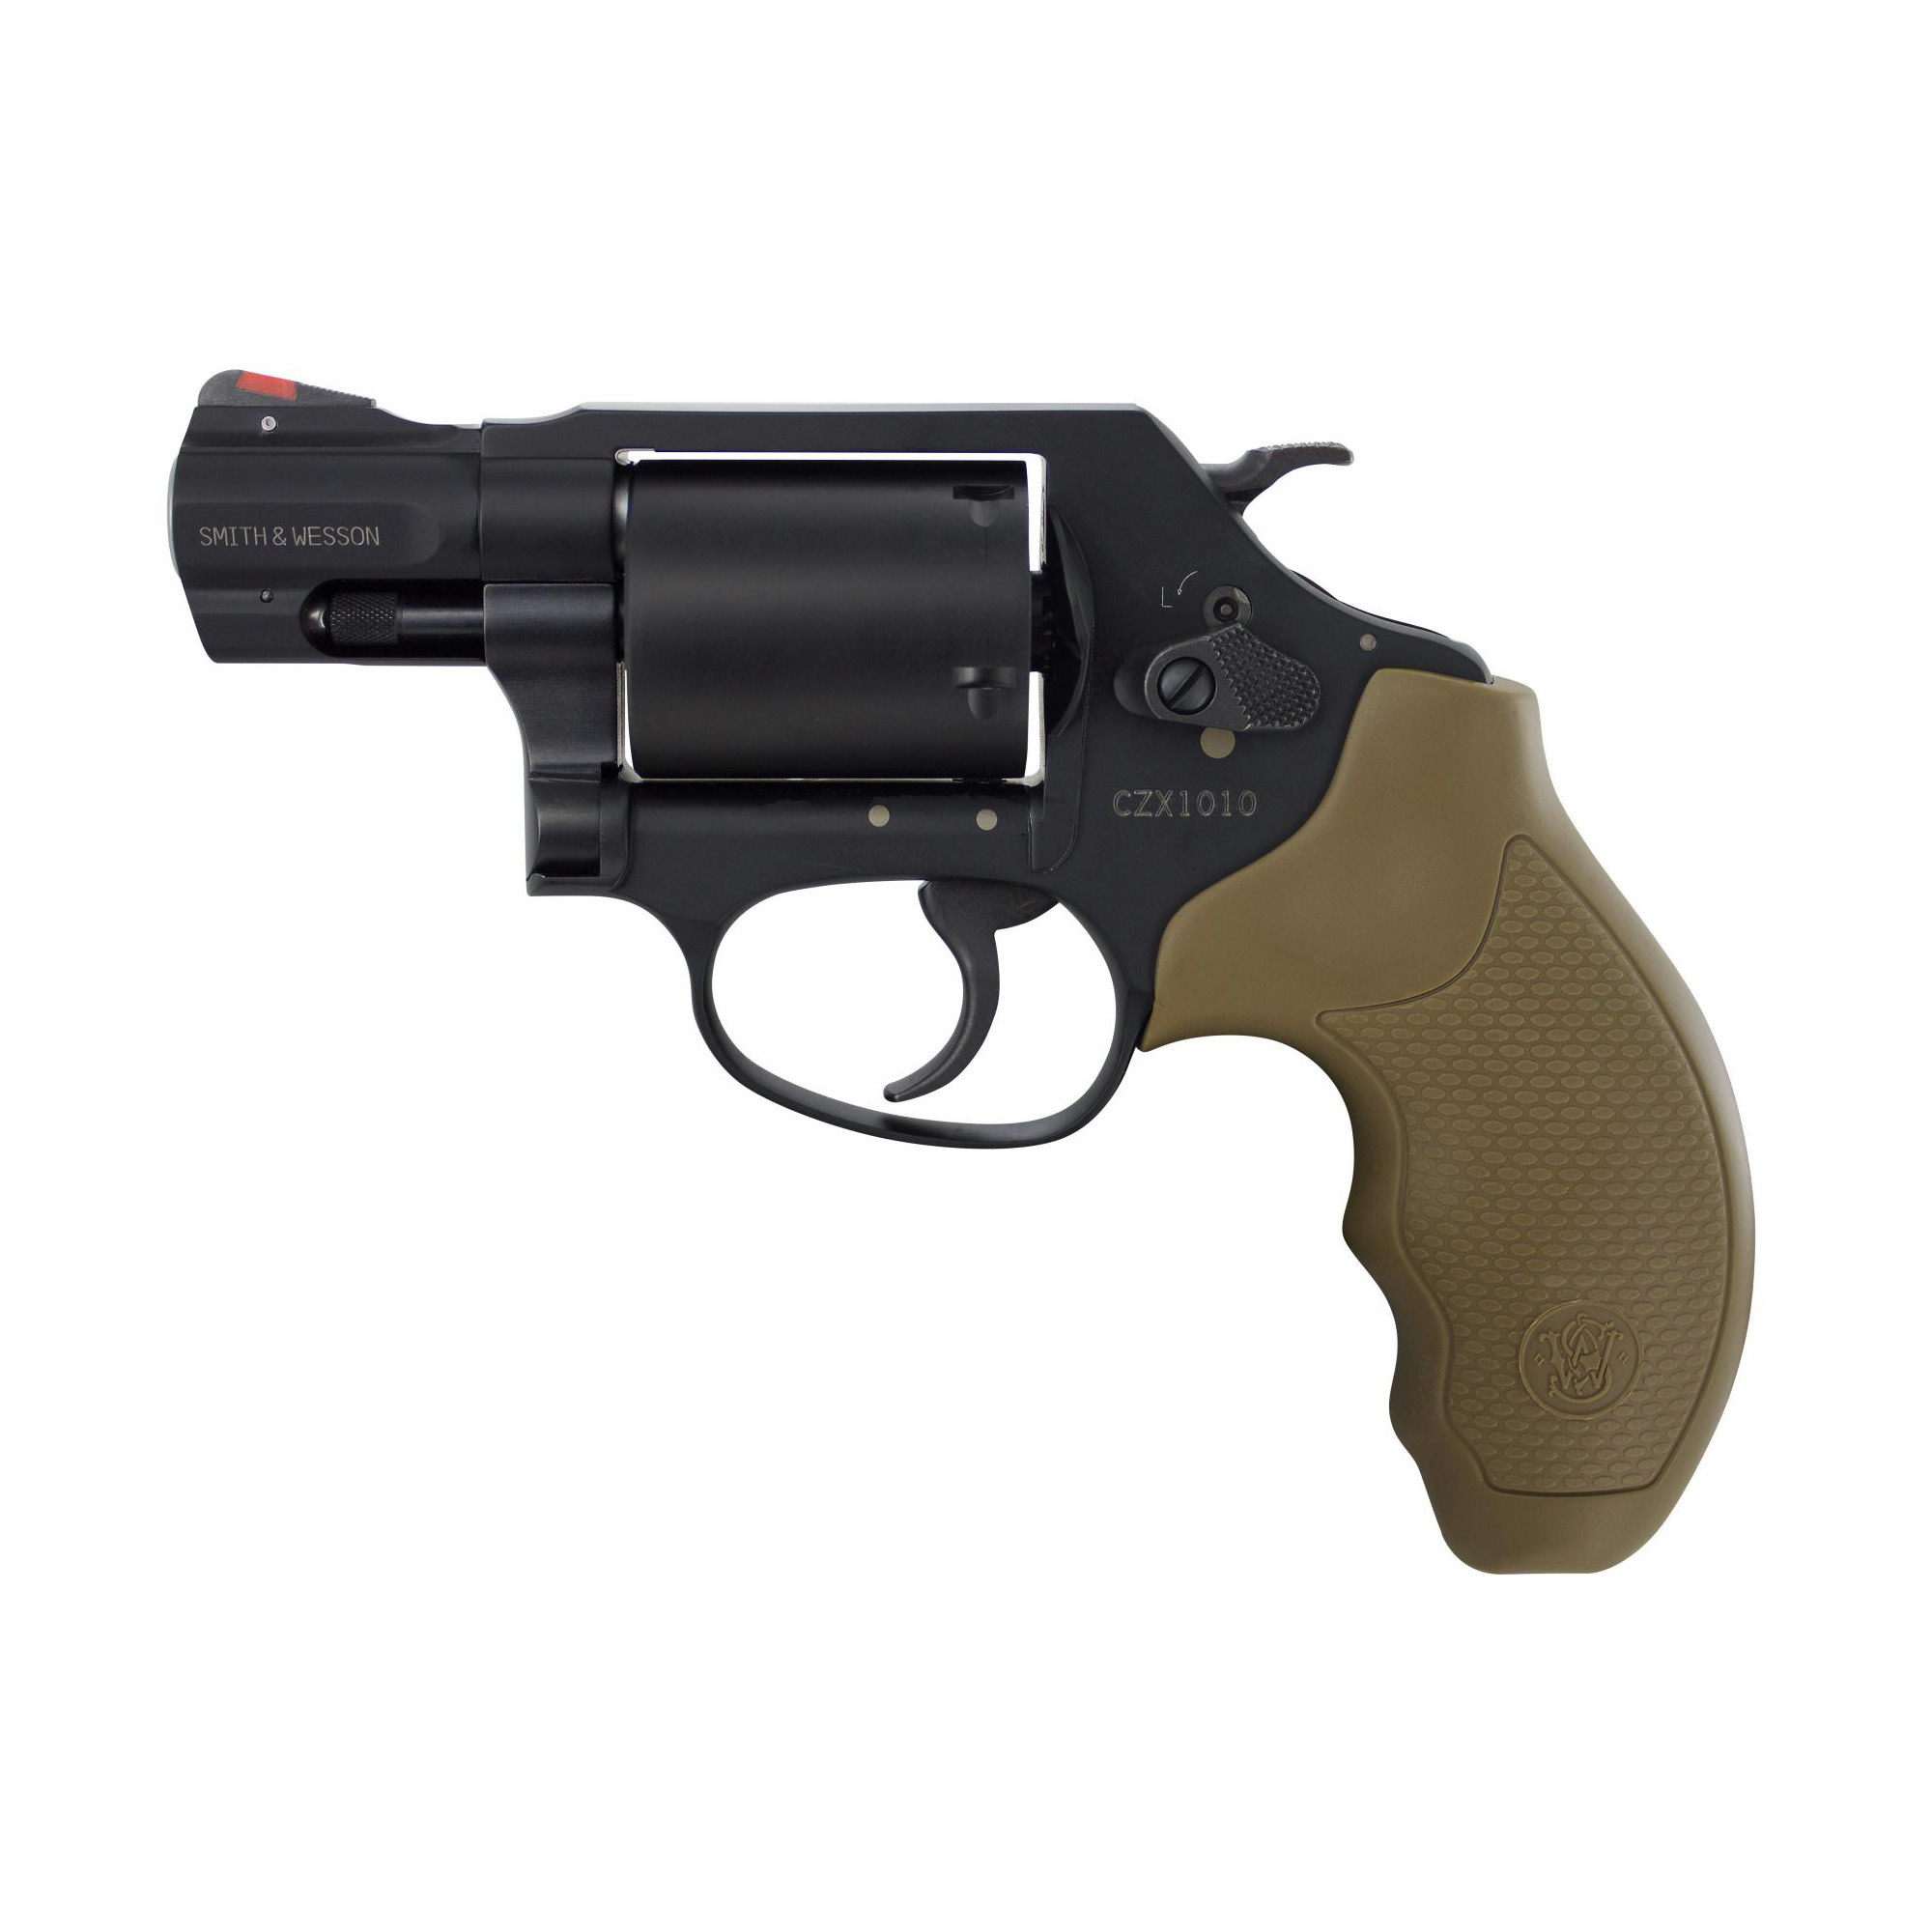 """Smith & Wesson, Model 360J, 357 Magnum, 1.875"""", Scandium, PVD Black Finish, FDE Grip, 5Rd, Unfluted Cylinder, Red Ramp Front Sight"""